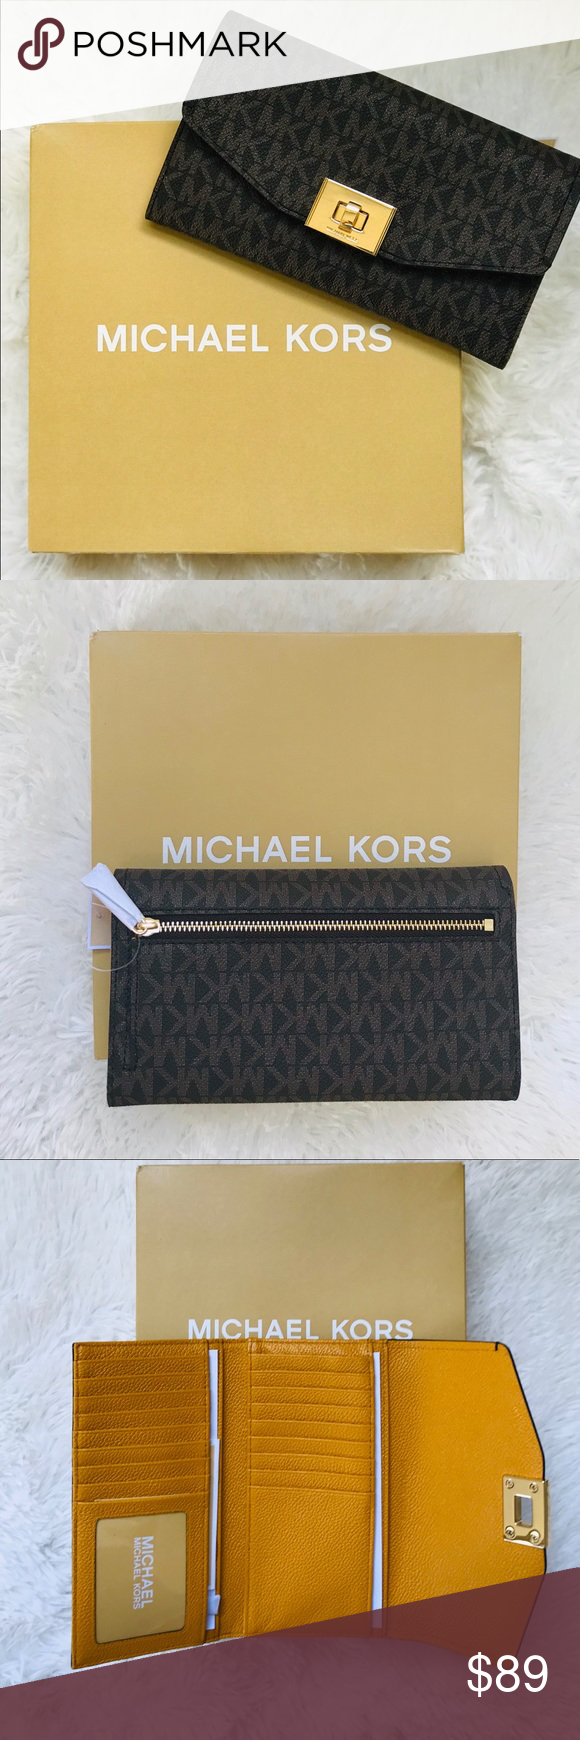 8ff0c19b3472 Michael Kors Cassie MK Signature Trifold Wallet Order now ❗ Same day  shipping ✅ Make